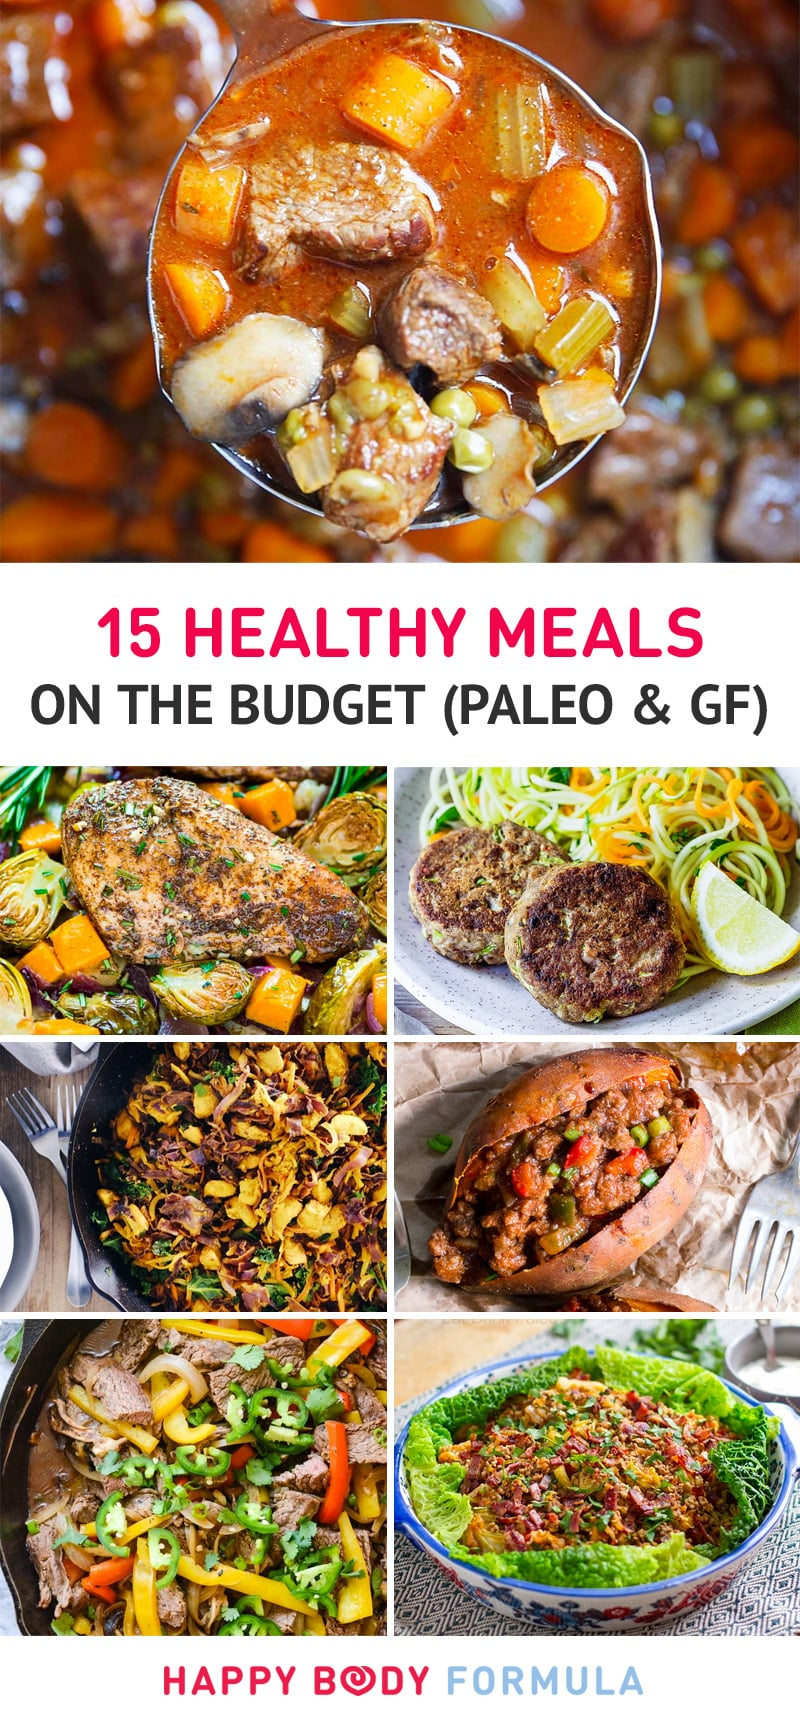 15 Healthy Meals On The Budget (Paleo & Gluten-Free)